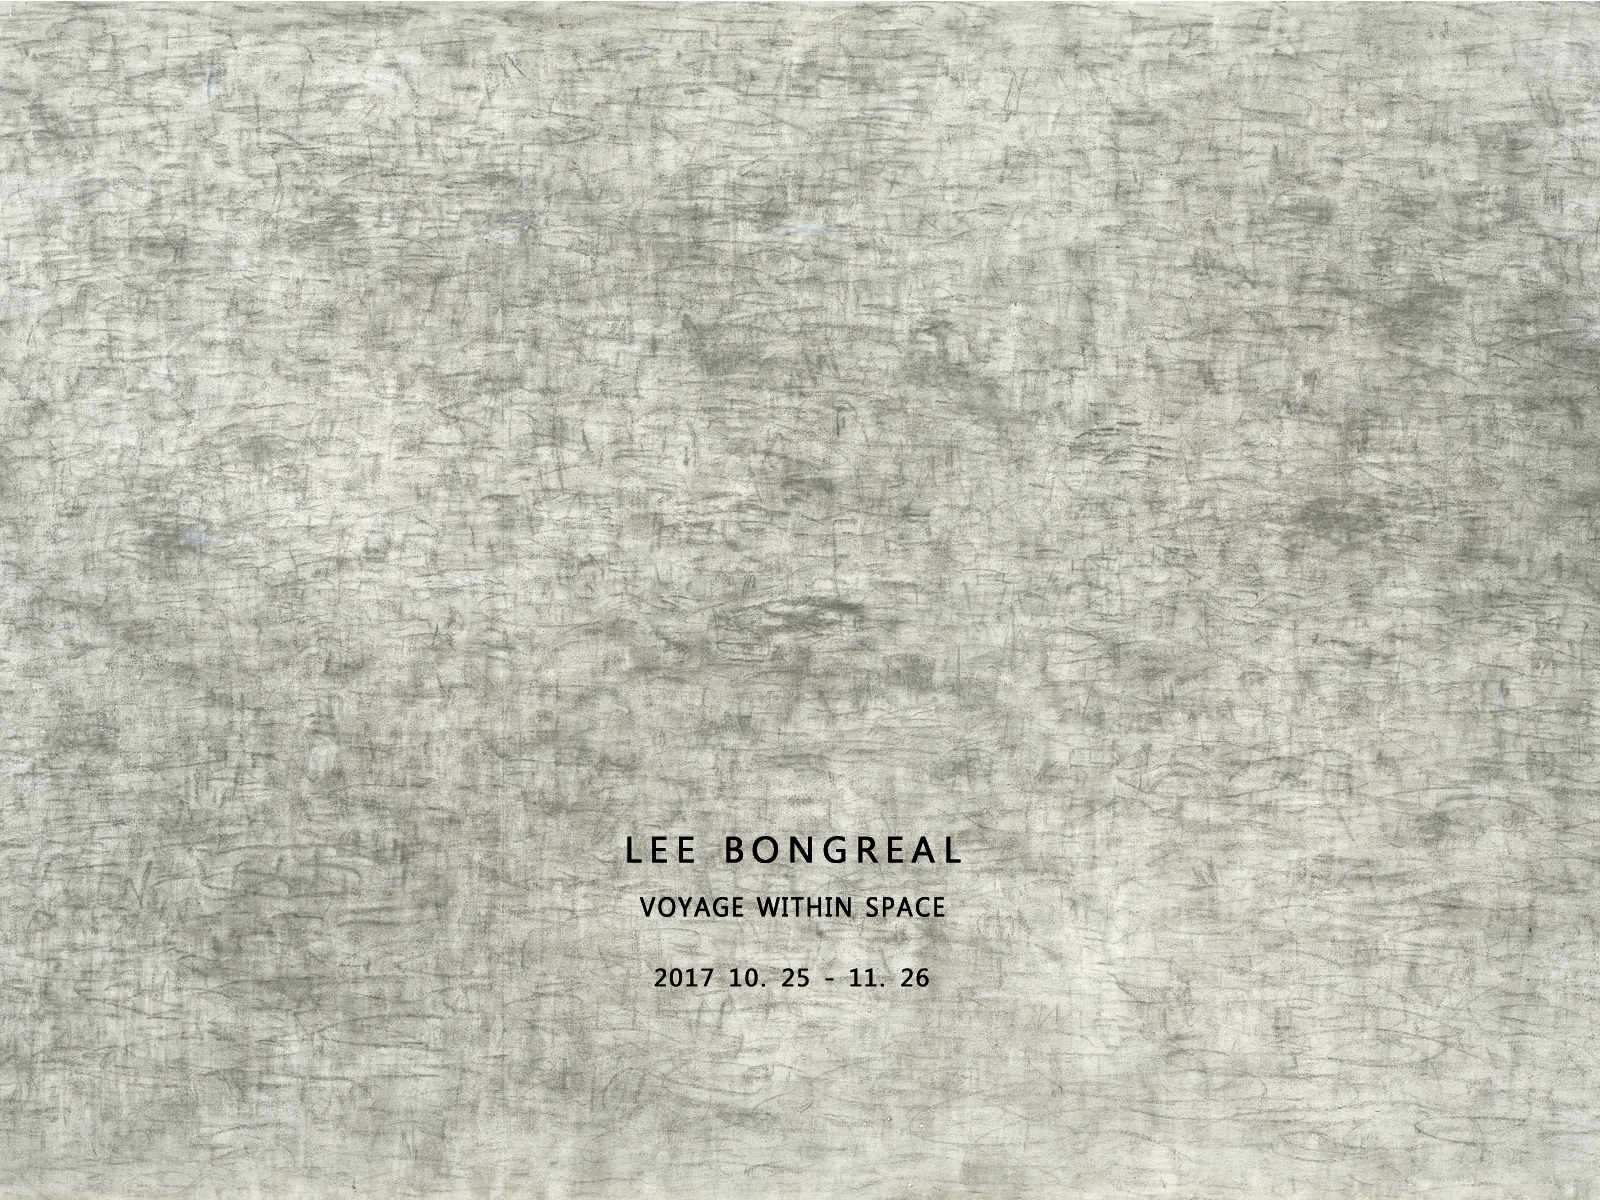 Lee Bongreal - Voyage within Space